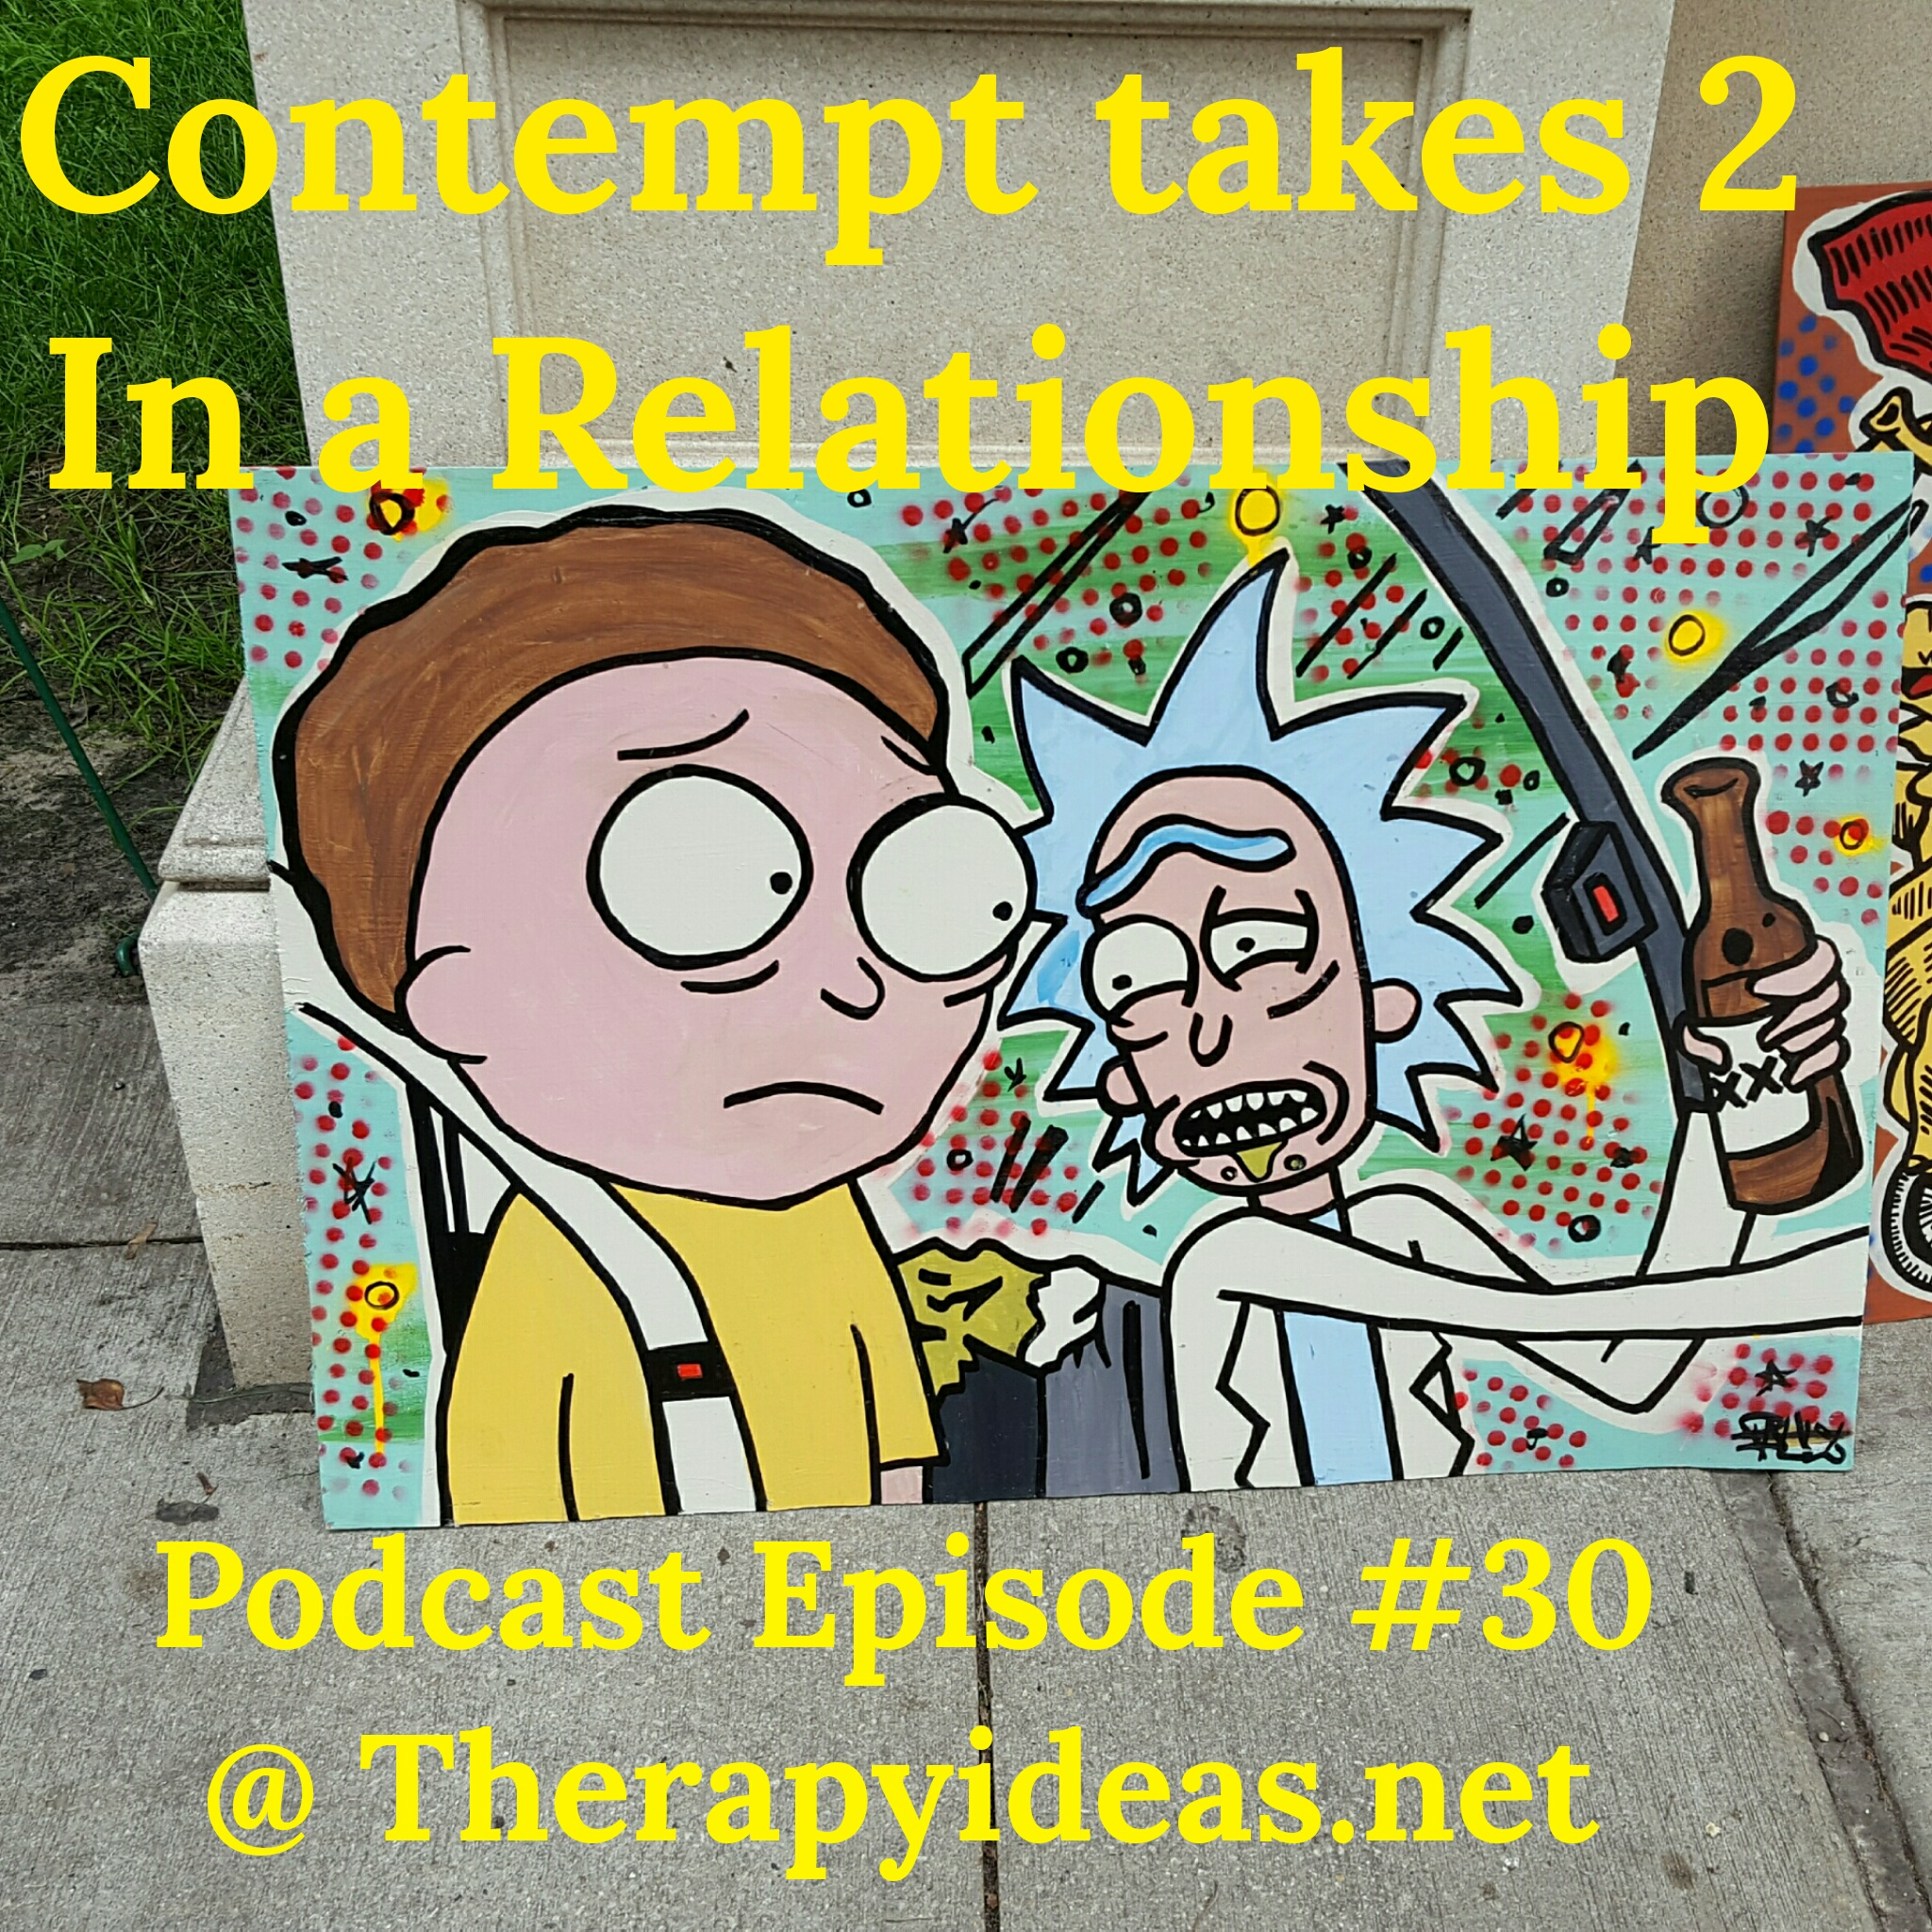 What Healthy Couples Know That You Don't - Contempt Takes 2 in Relationships